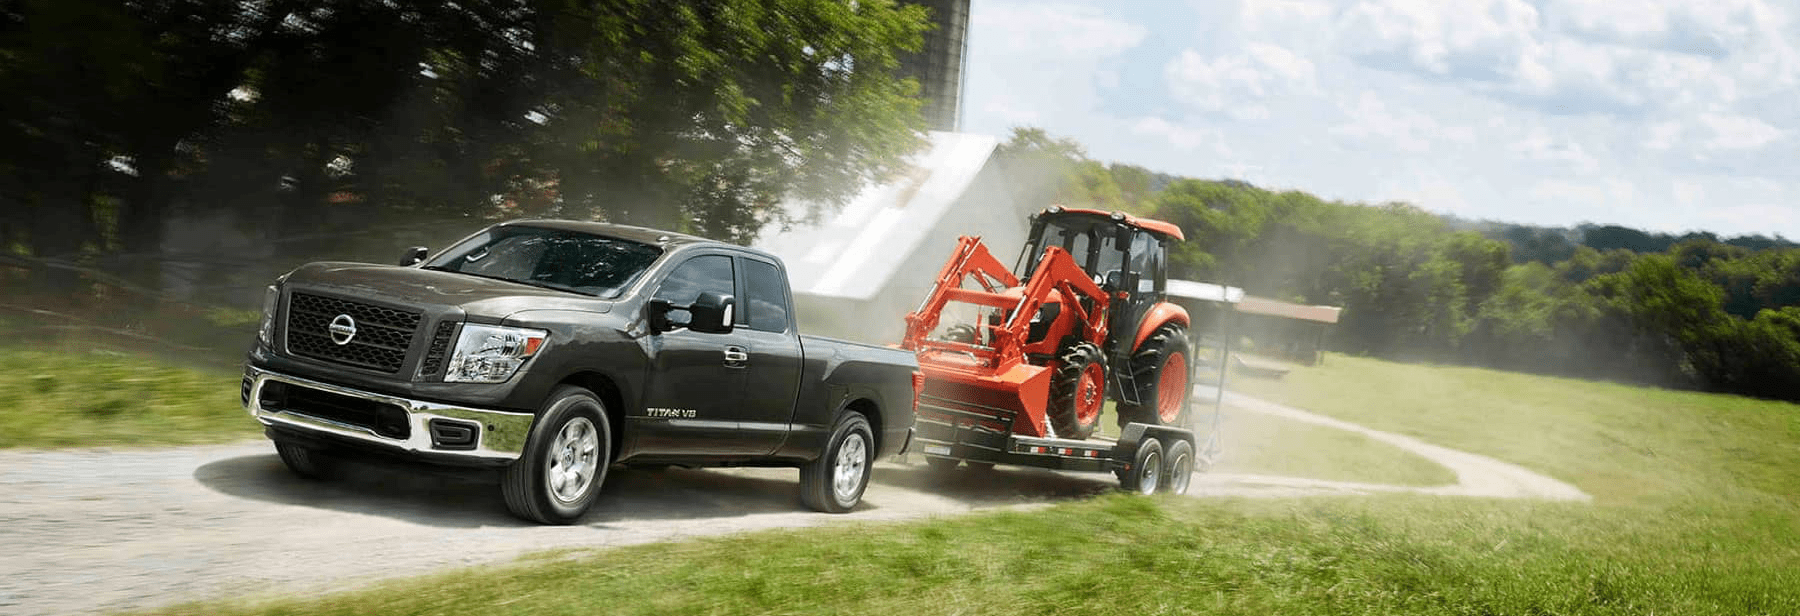 2019 Nissan Truck Pulling Cargo